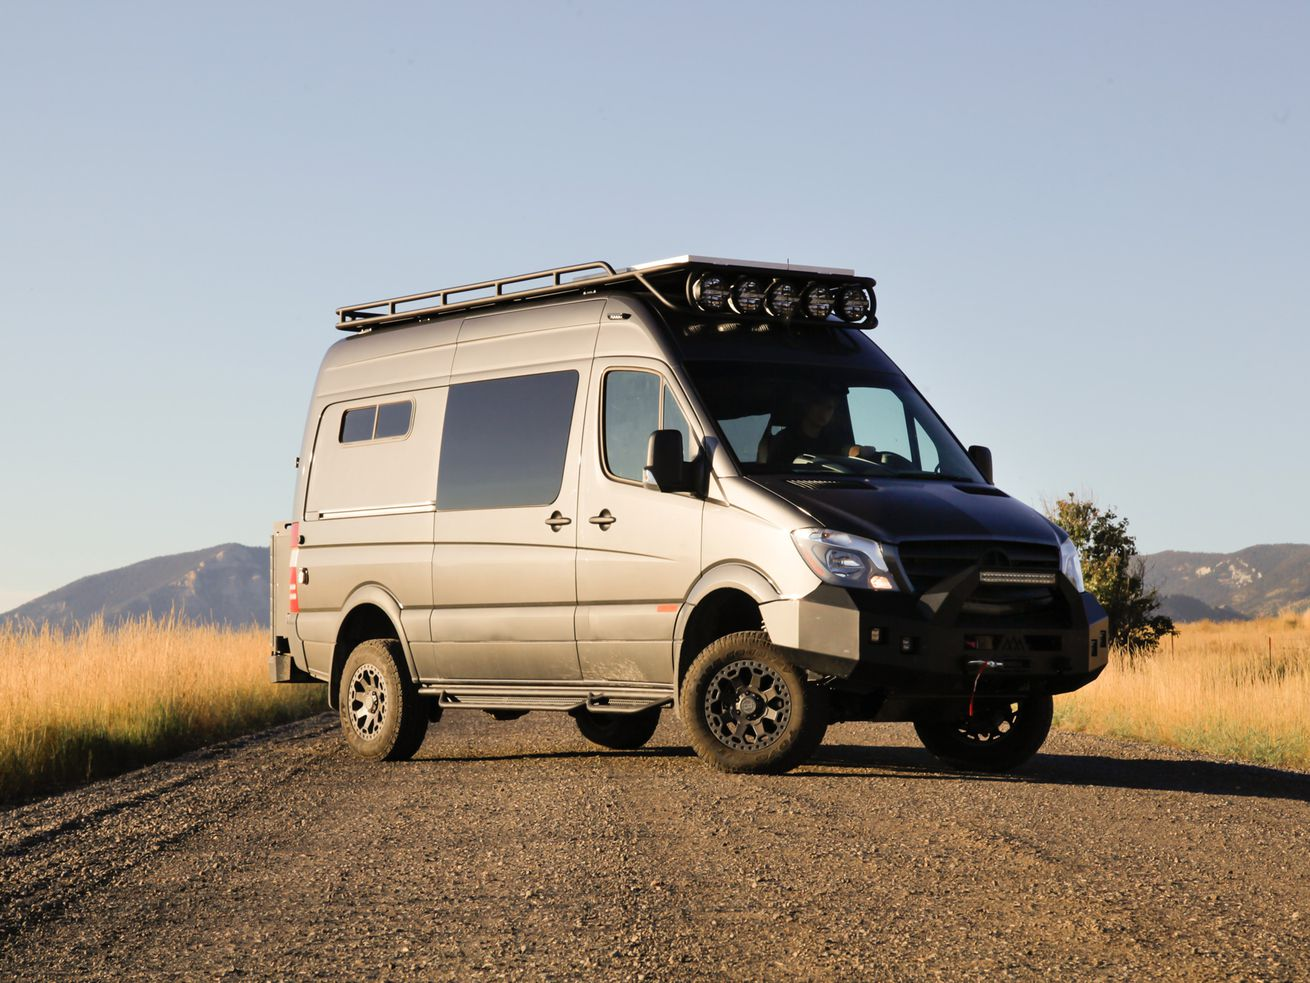 Luxury camper van fits all the essentials in 112 square feet